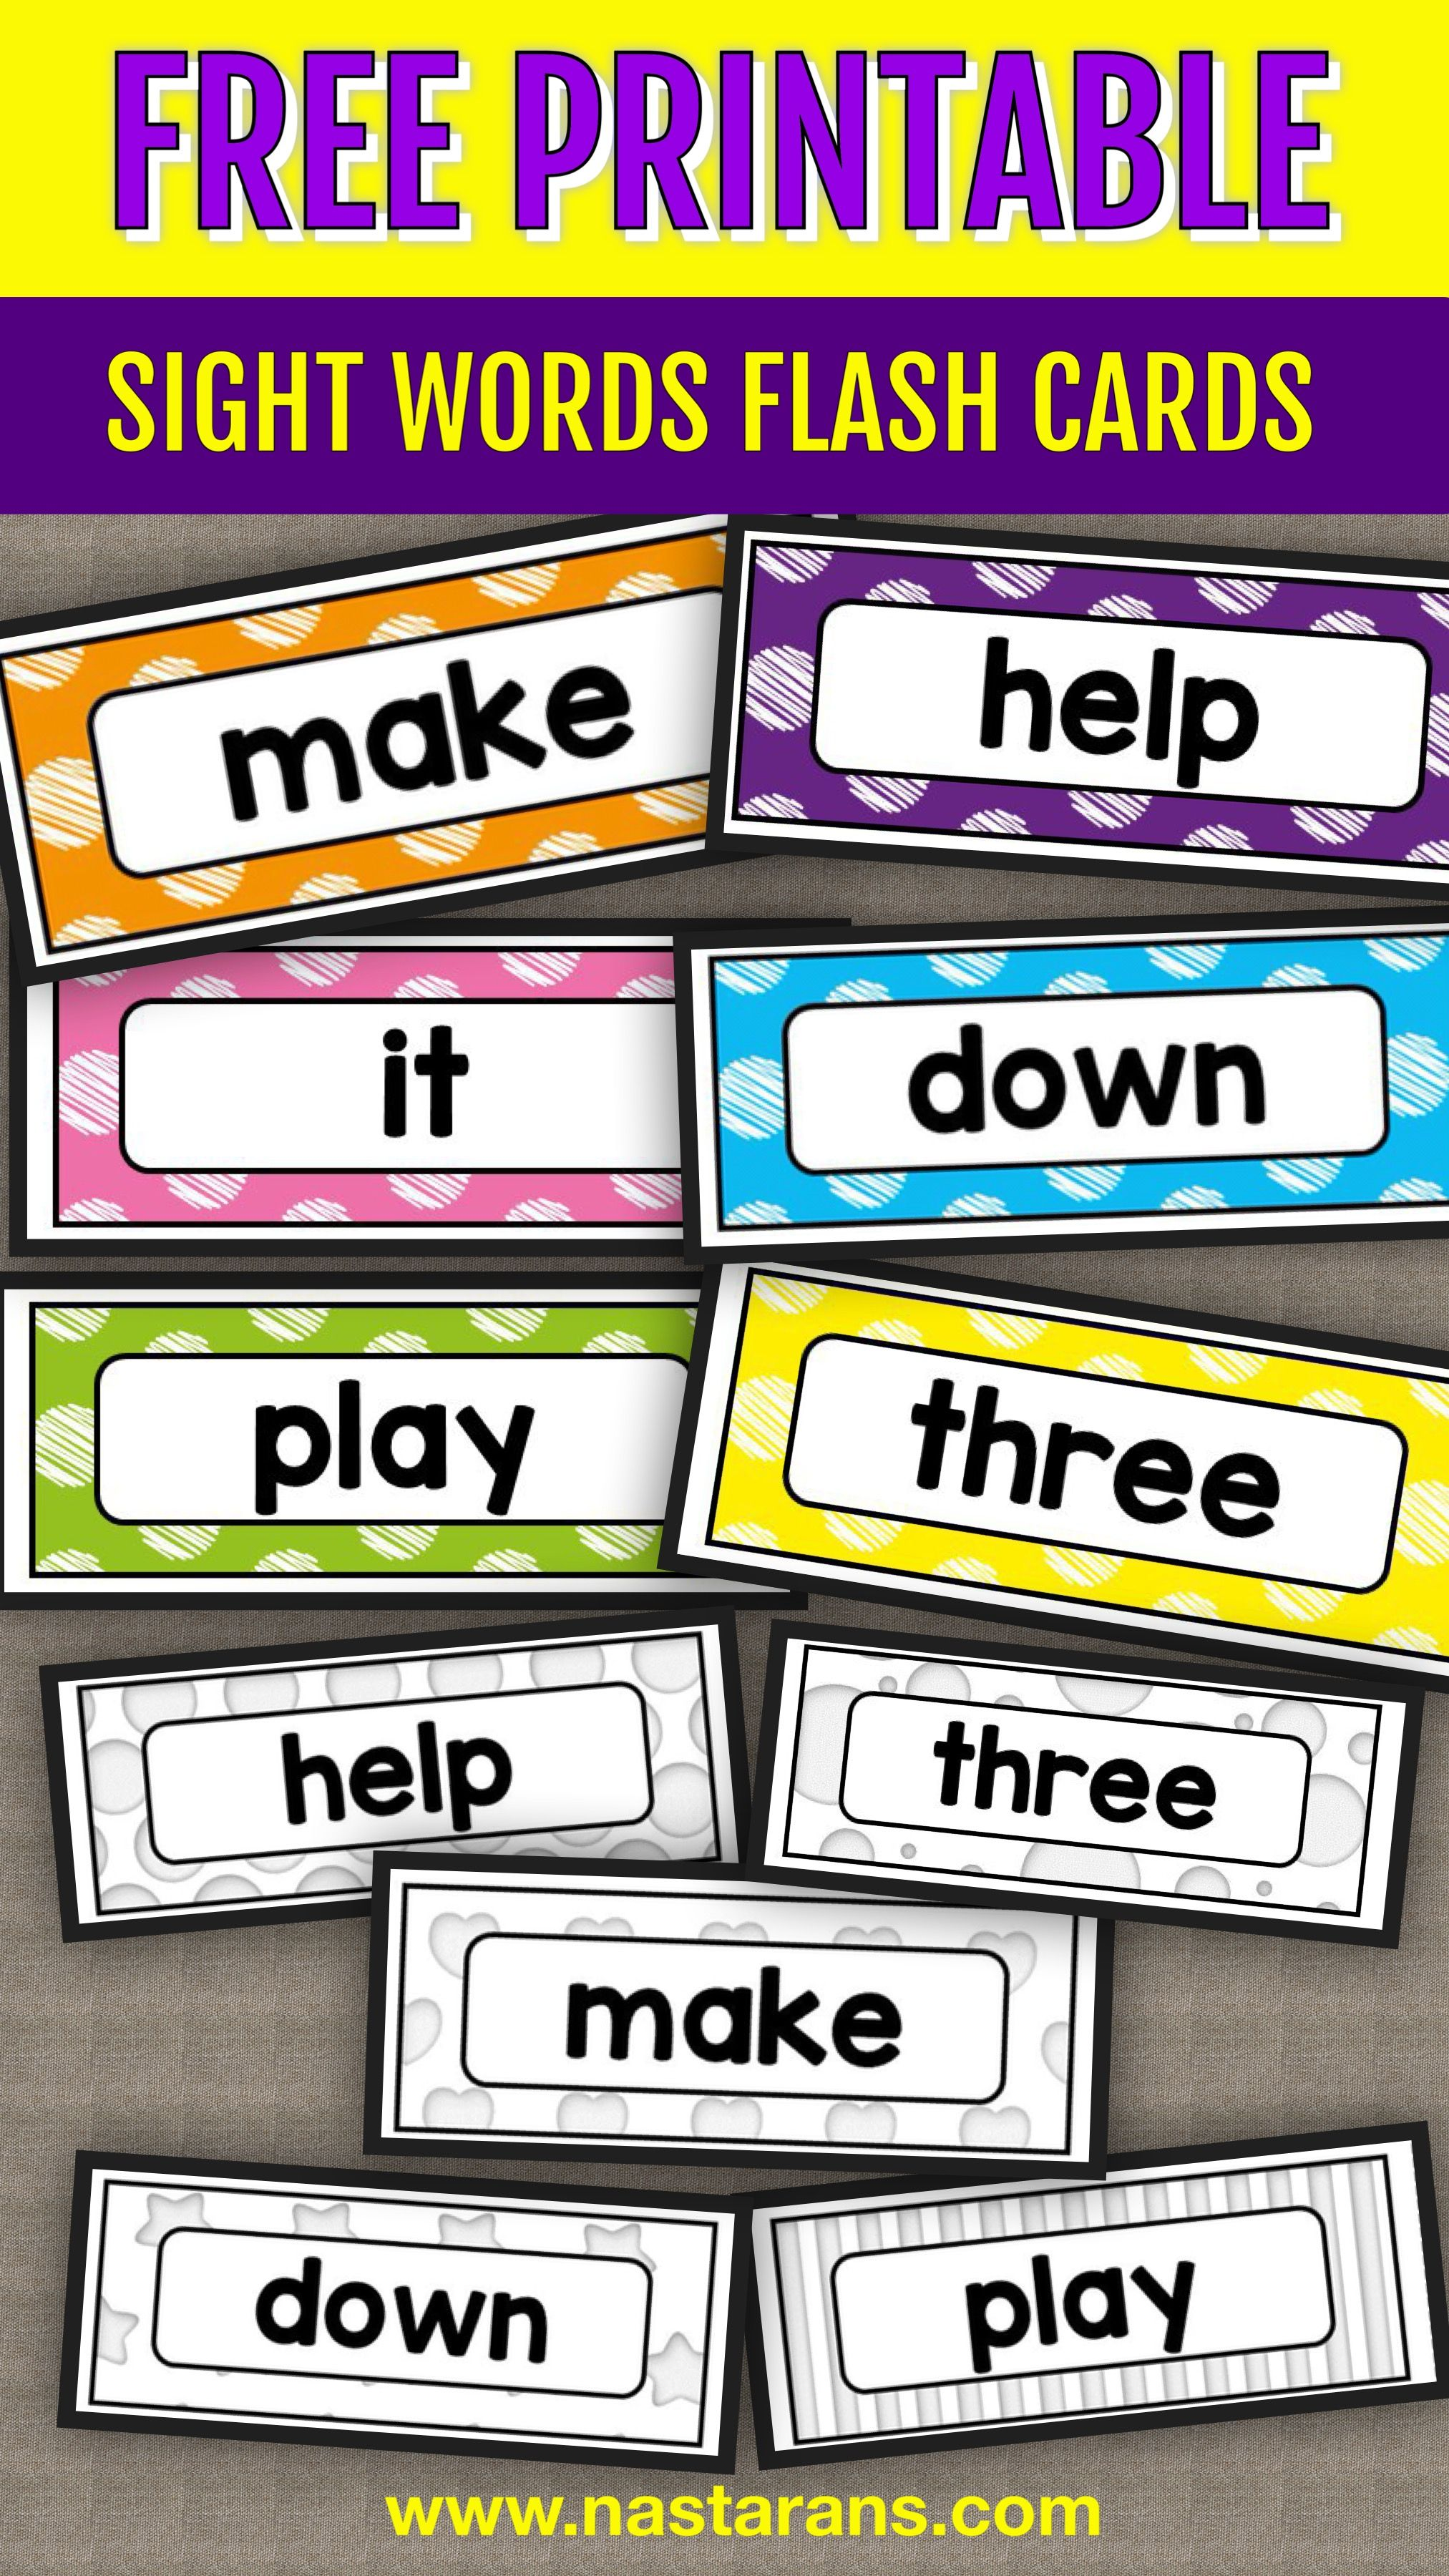 It is a picture of Free Printable Sight Word Flashcards in colorful